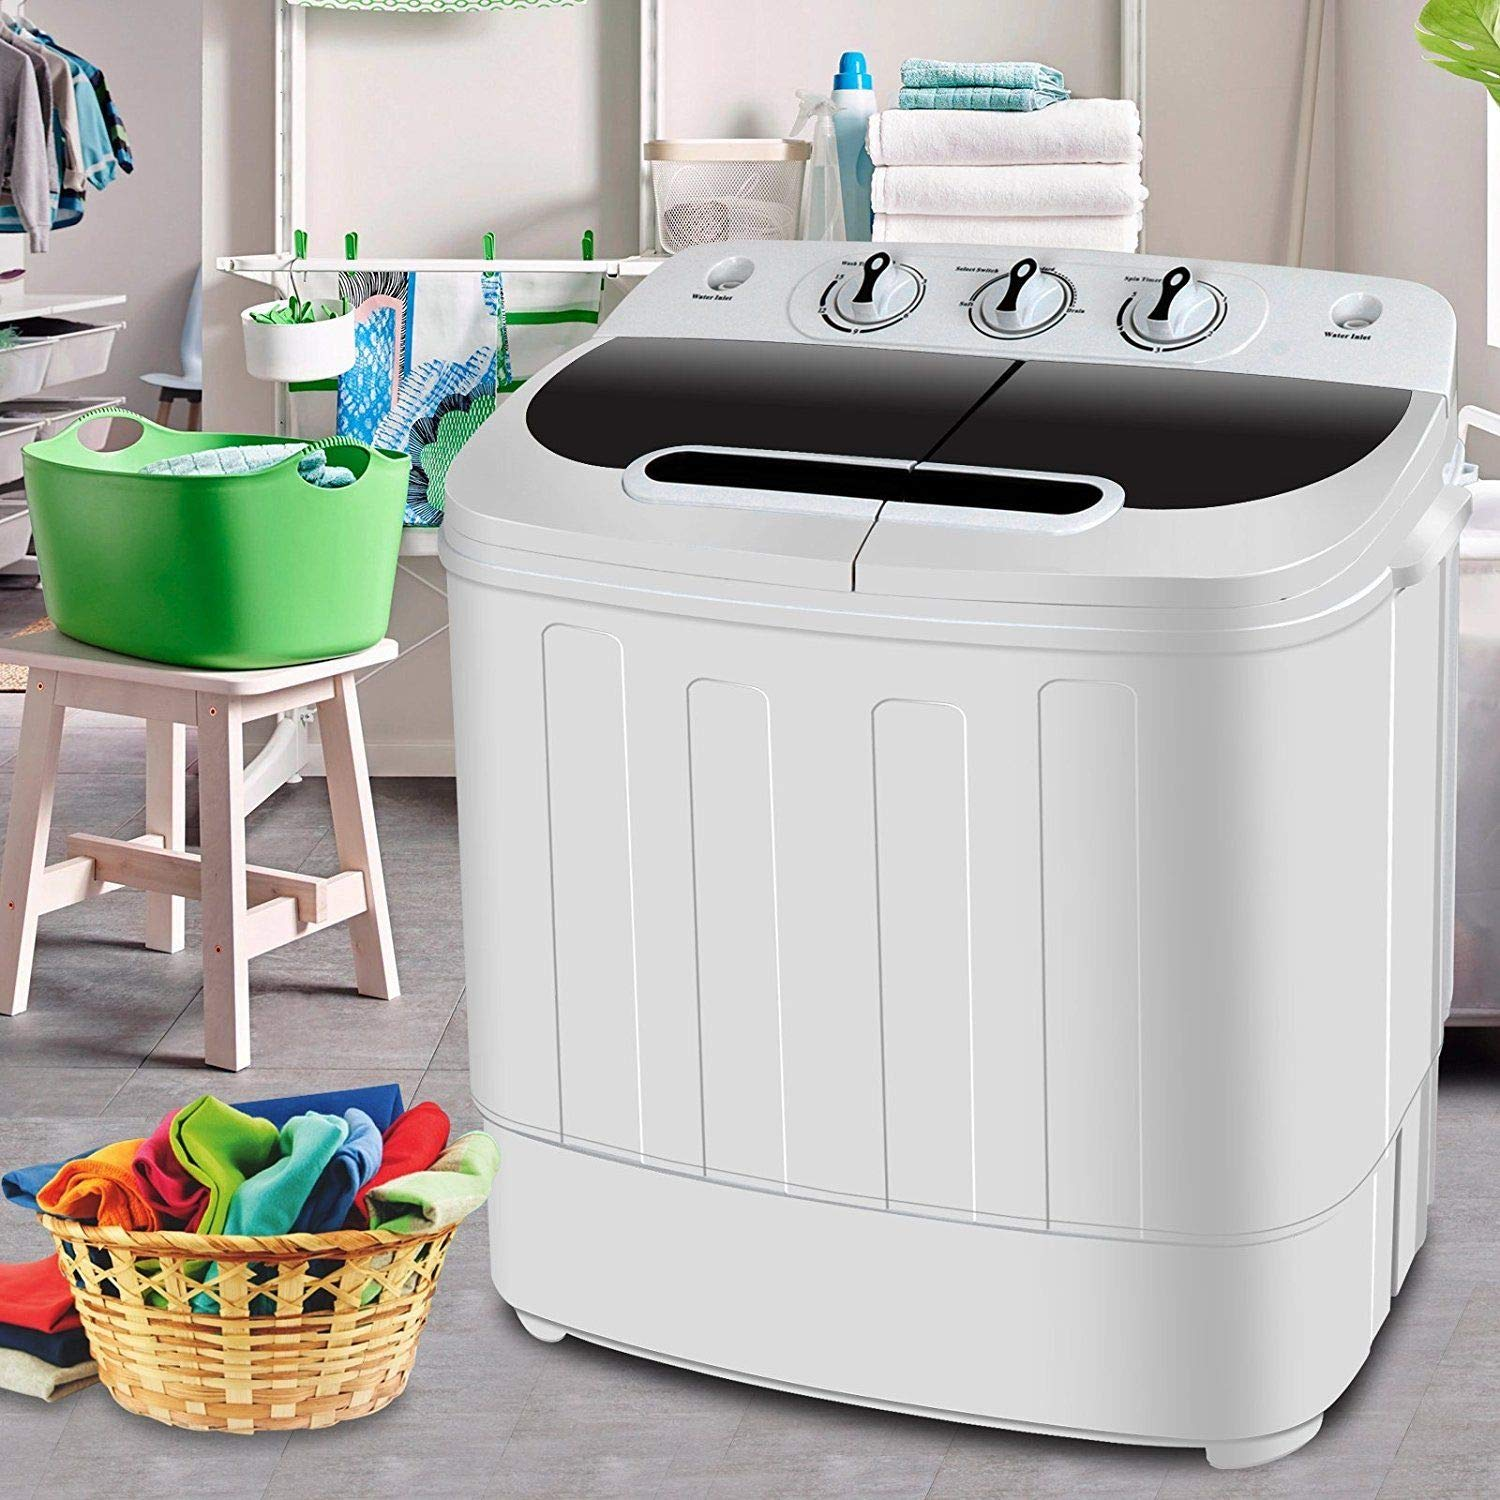 White Top Load Mini Compact Electric Portable Washing Machine Twin Tub 13lb Washer Spin Cycle & Dryer Dual Function Condos Camping Dorm Durable Plastic Lightweight Space-Saving Clothes Laundry